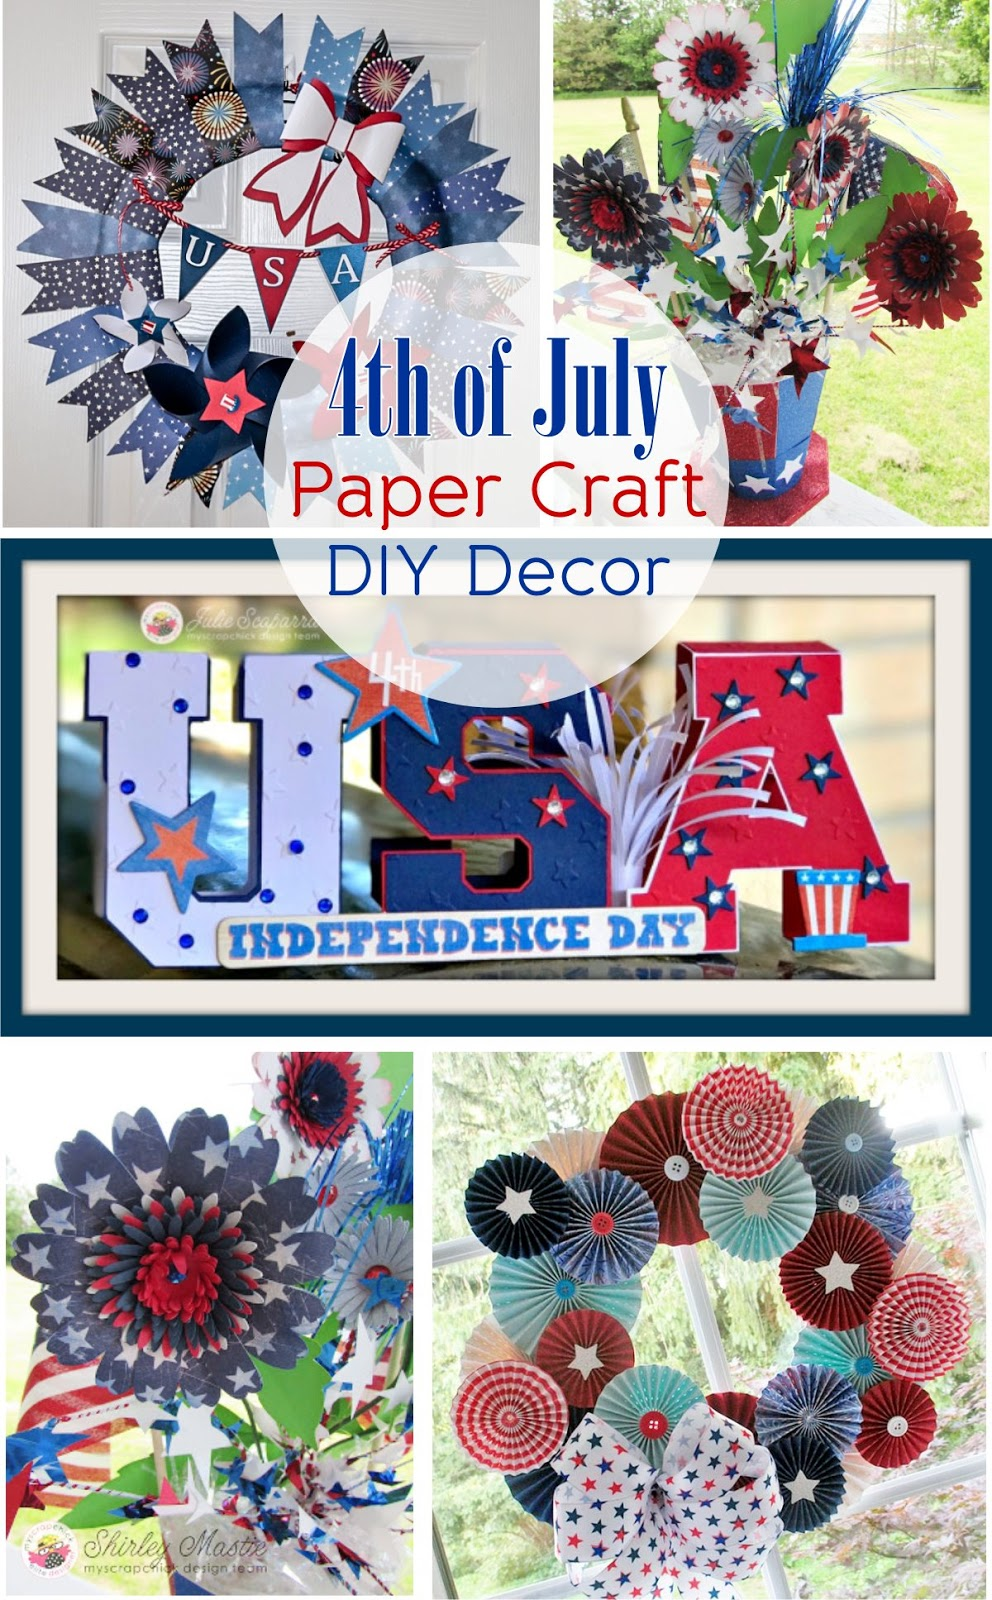 Patriotic Wreaths And Decor For Diy Paper Crafts Myscrapchick